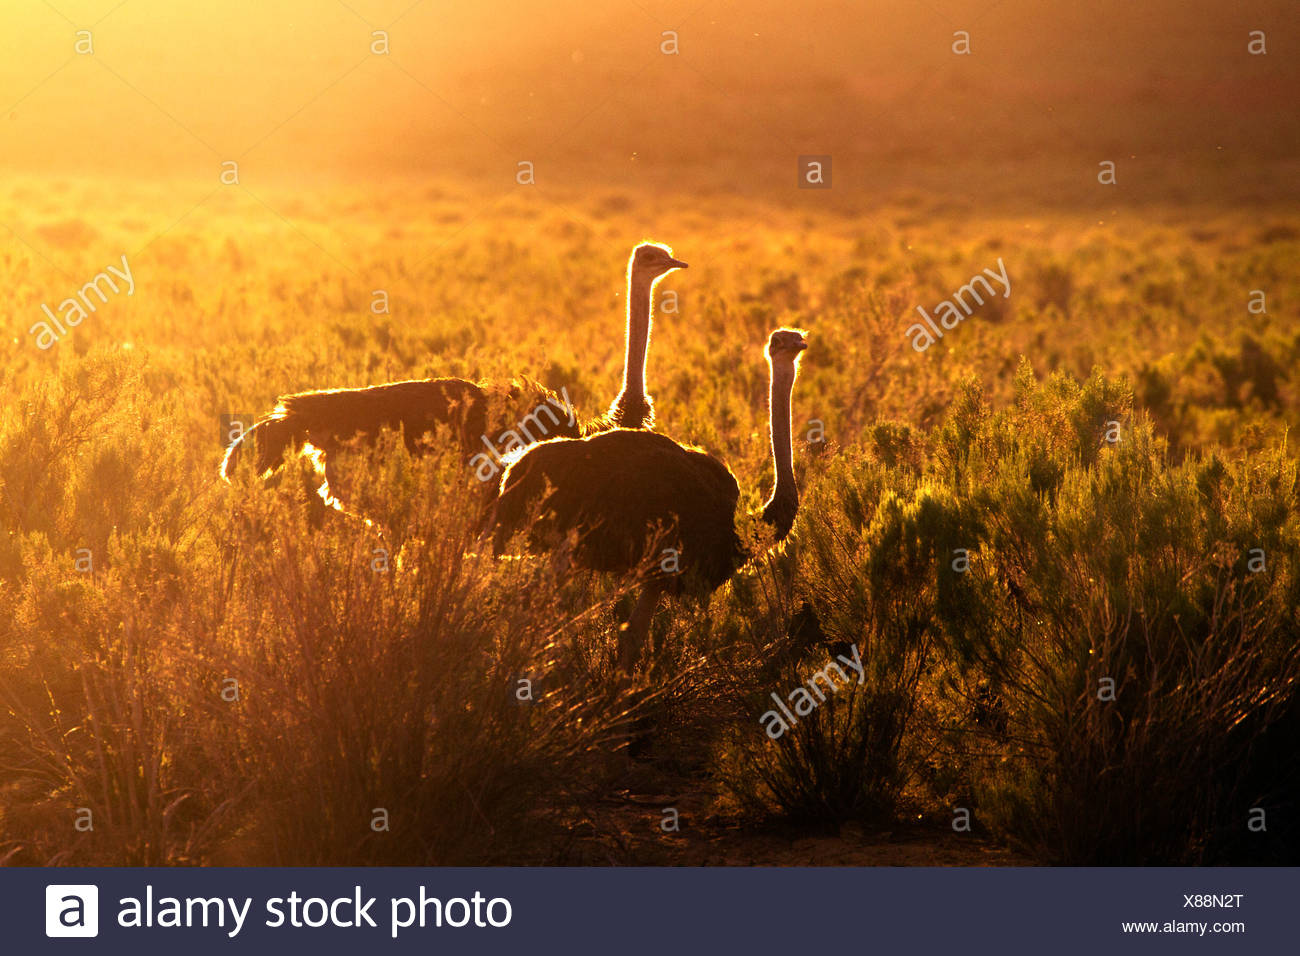 Two ostriches at sunset, South Africa - Stock Image